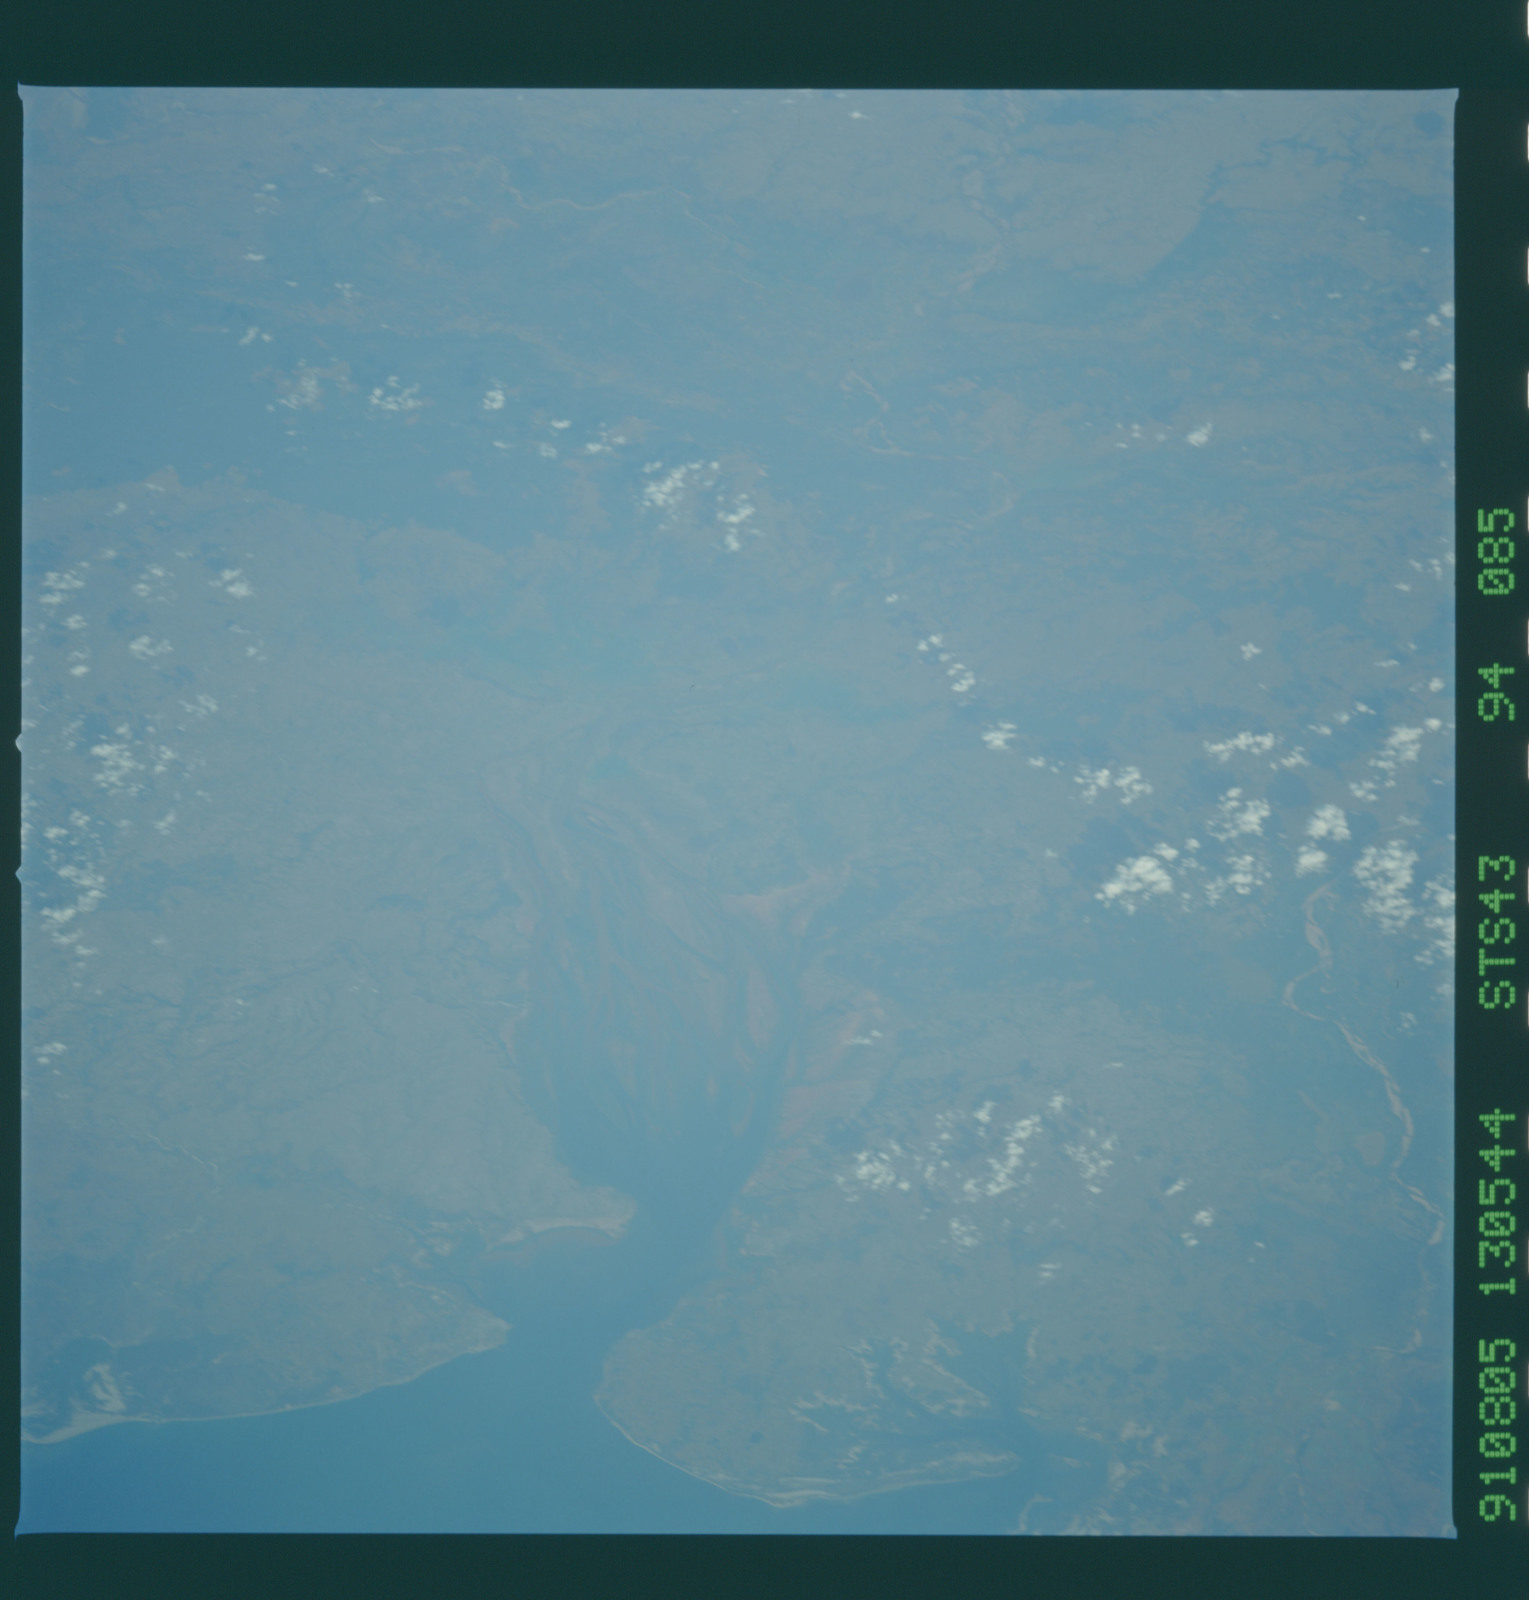 S43-94-085 - STS-043 - STS-43 earth observations